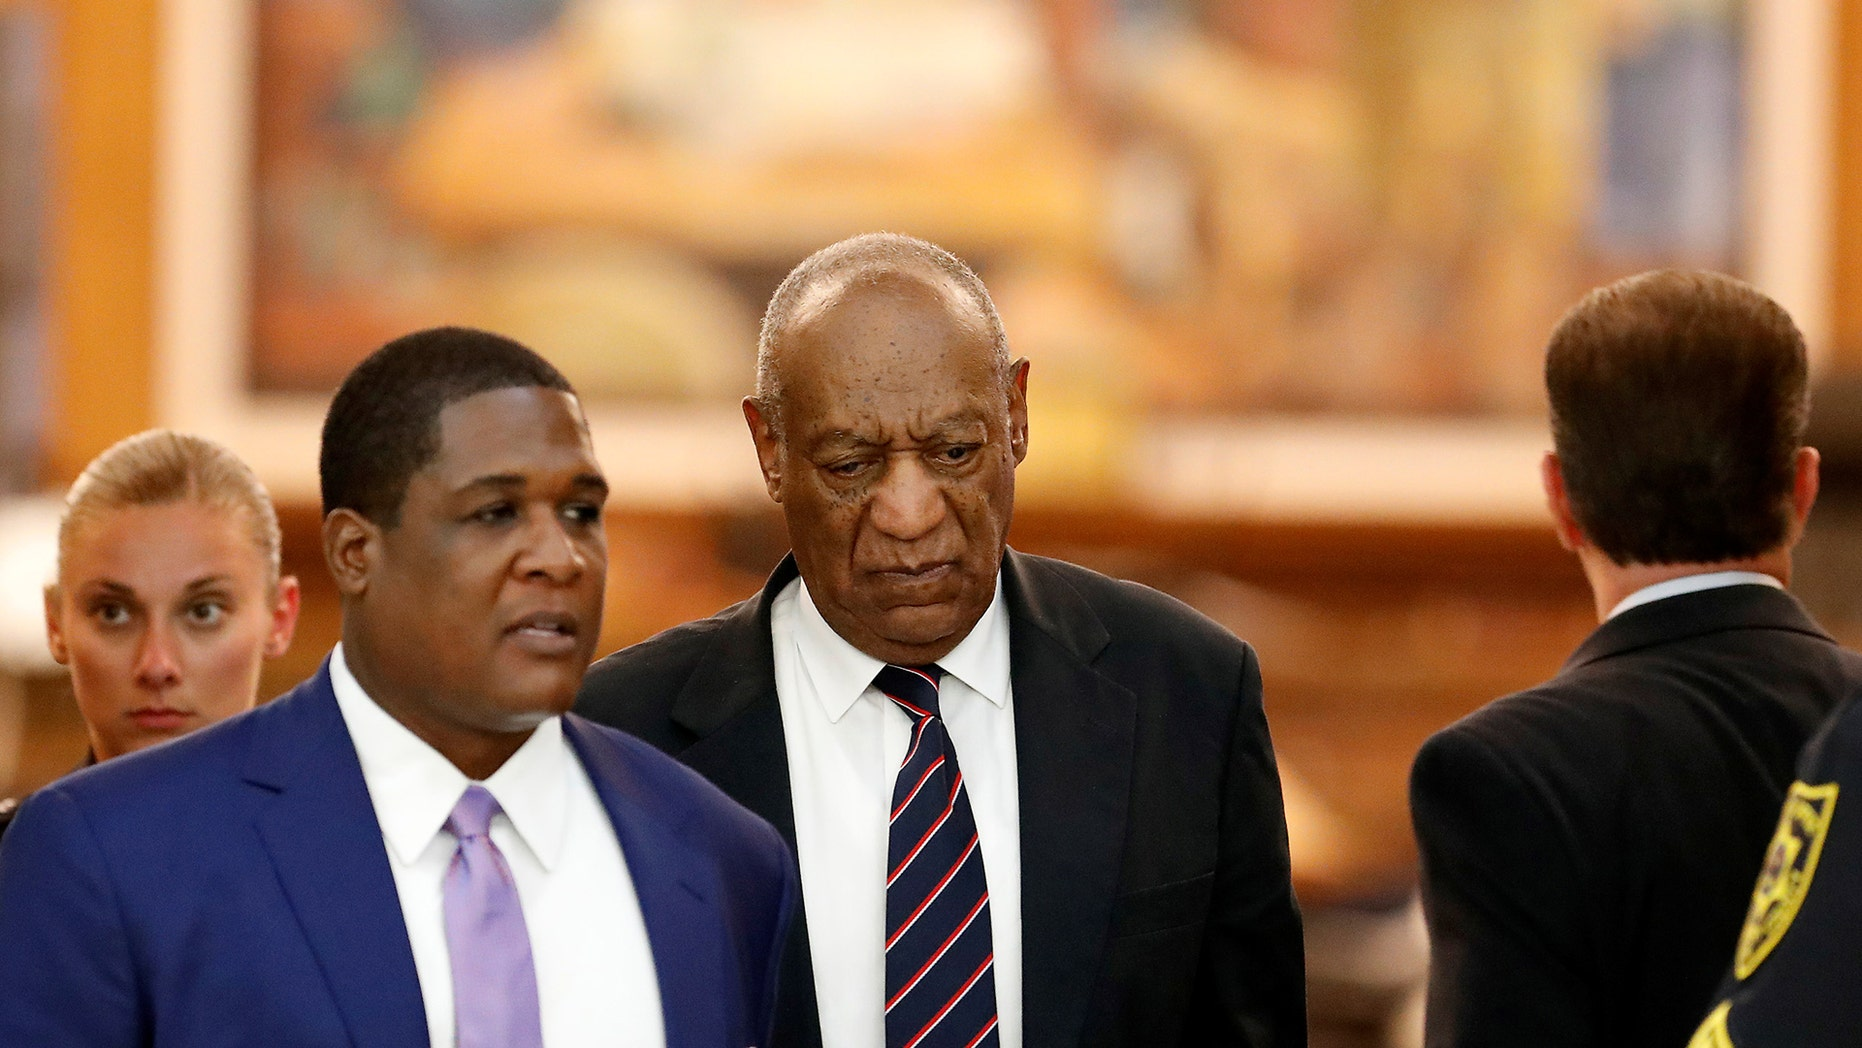 Bill Cosby (C) leaves the courtroom after the jury had a question during in his sexual assault trial at the Montgomery County Courthouse in Norristown, Pennsylvania, U.S. June 12, 2017.  REUTERS/David Maialetti/Pool - RTS16SIK